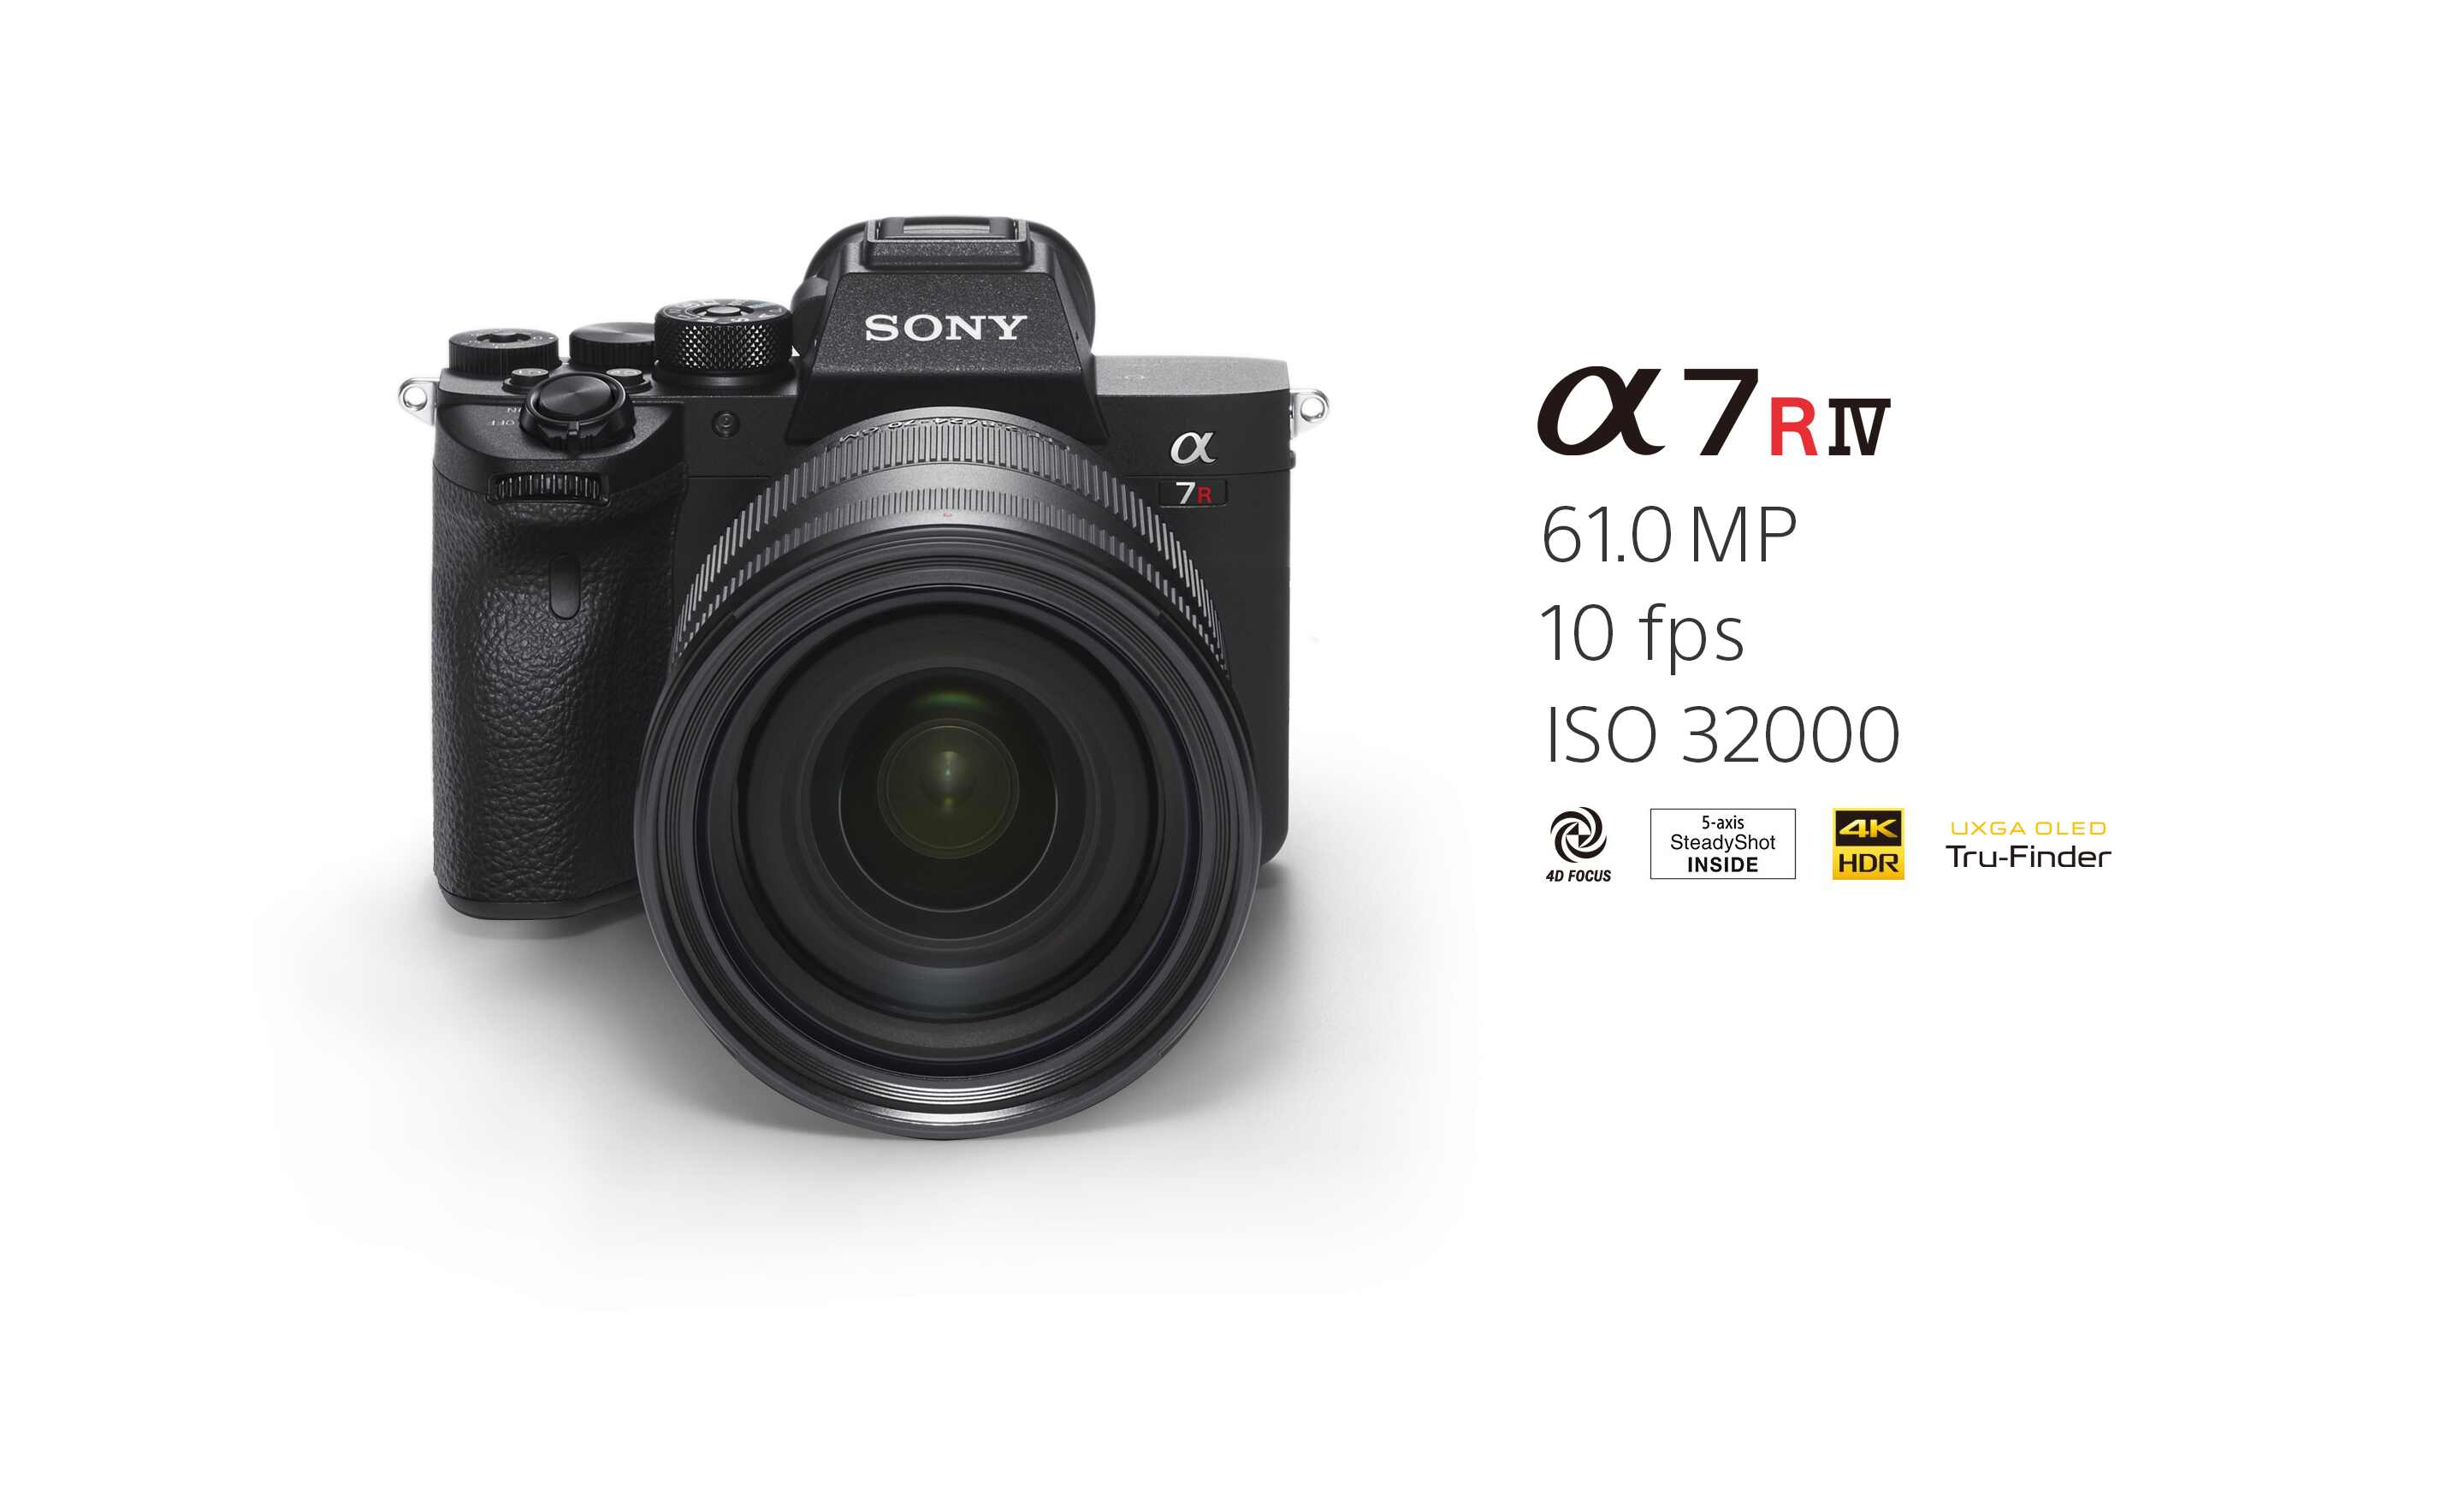 Sony's new A7R IV camera is a 61 MP full-frame mirrorless beast